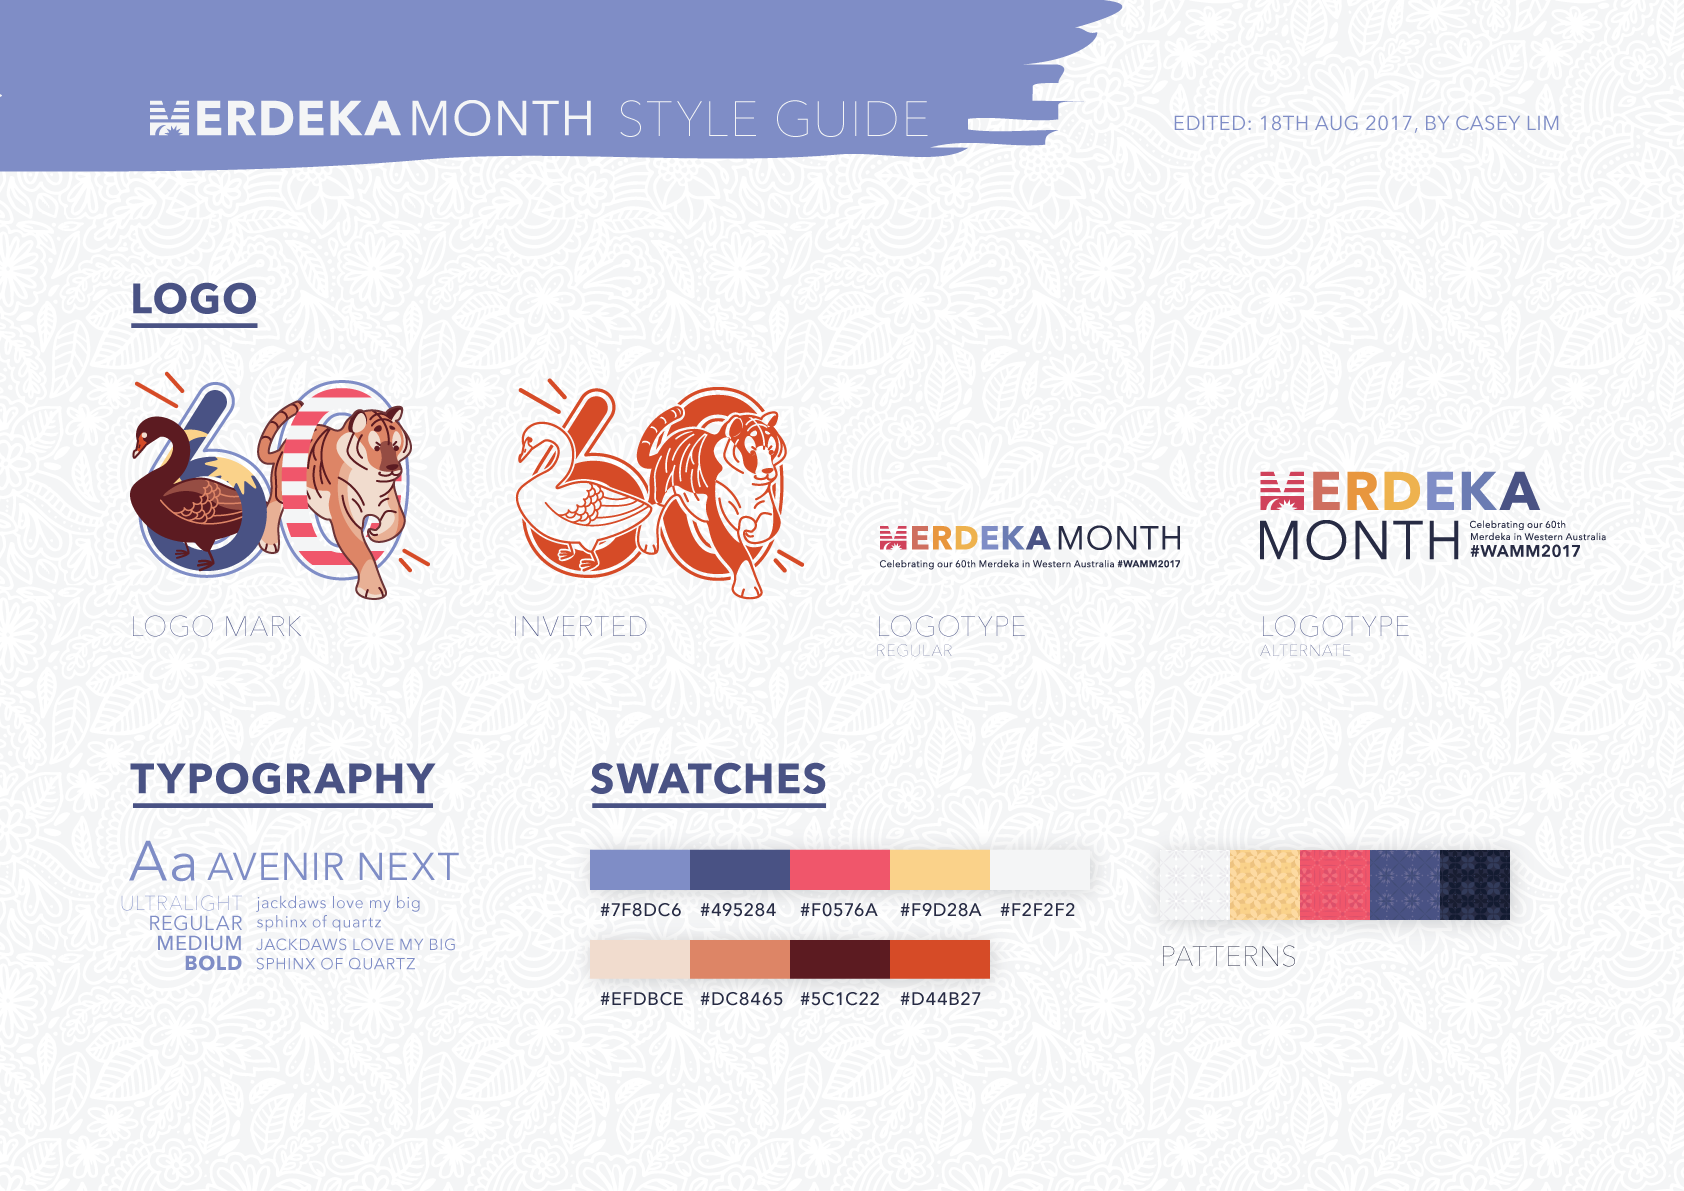 Merdeka Month Style Guide